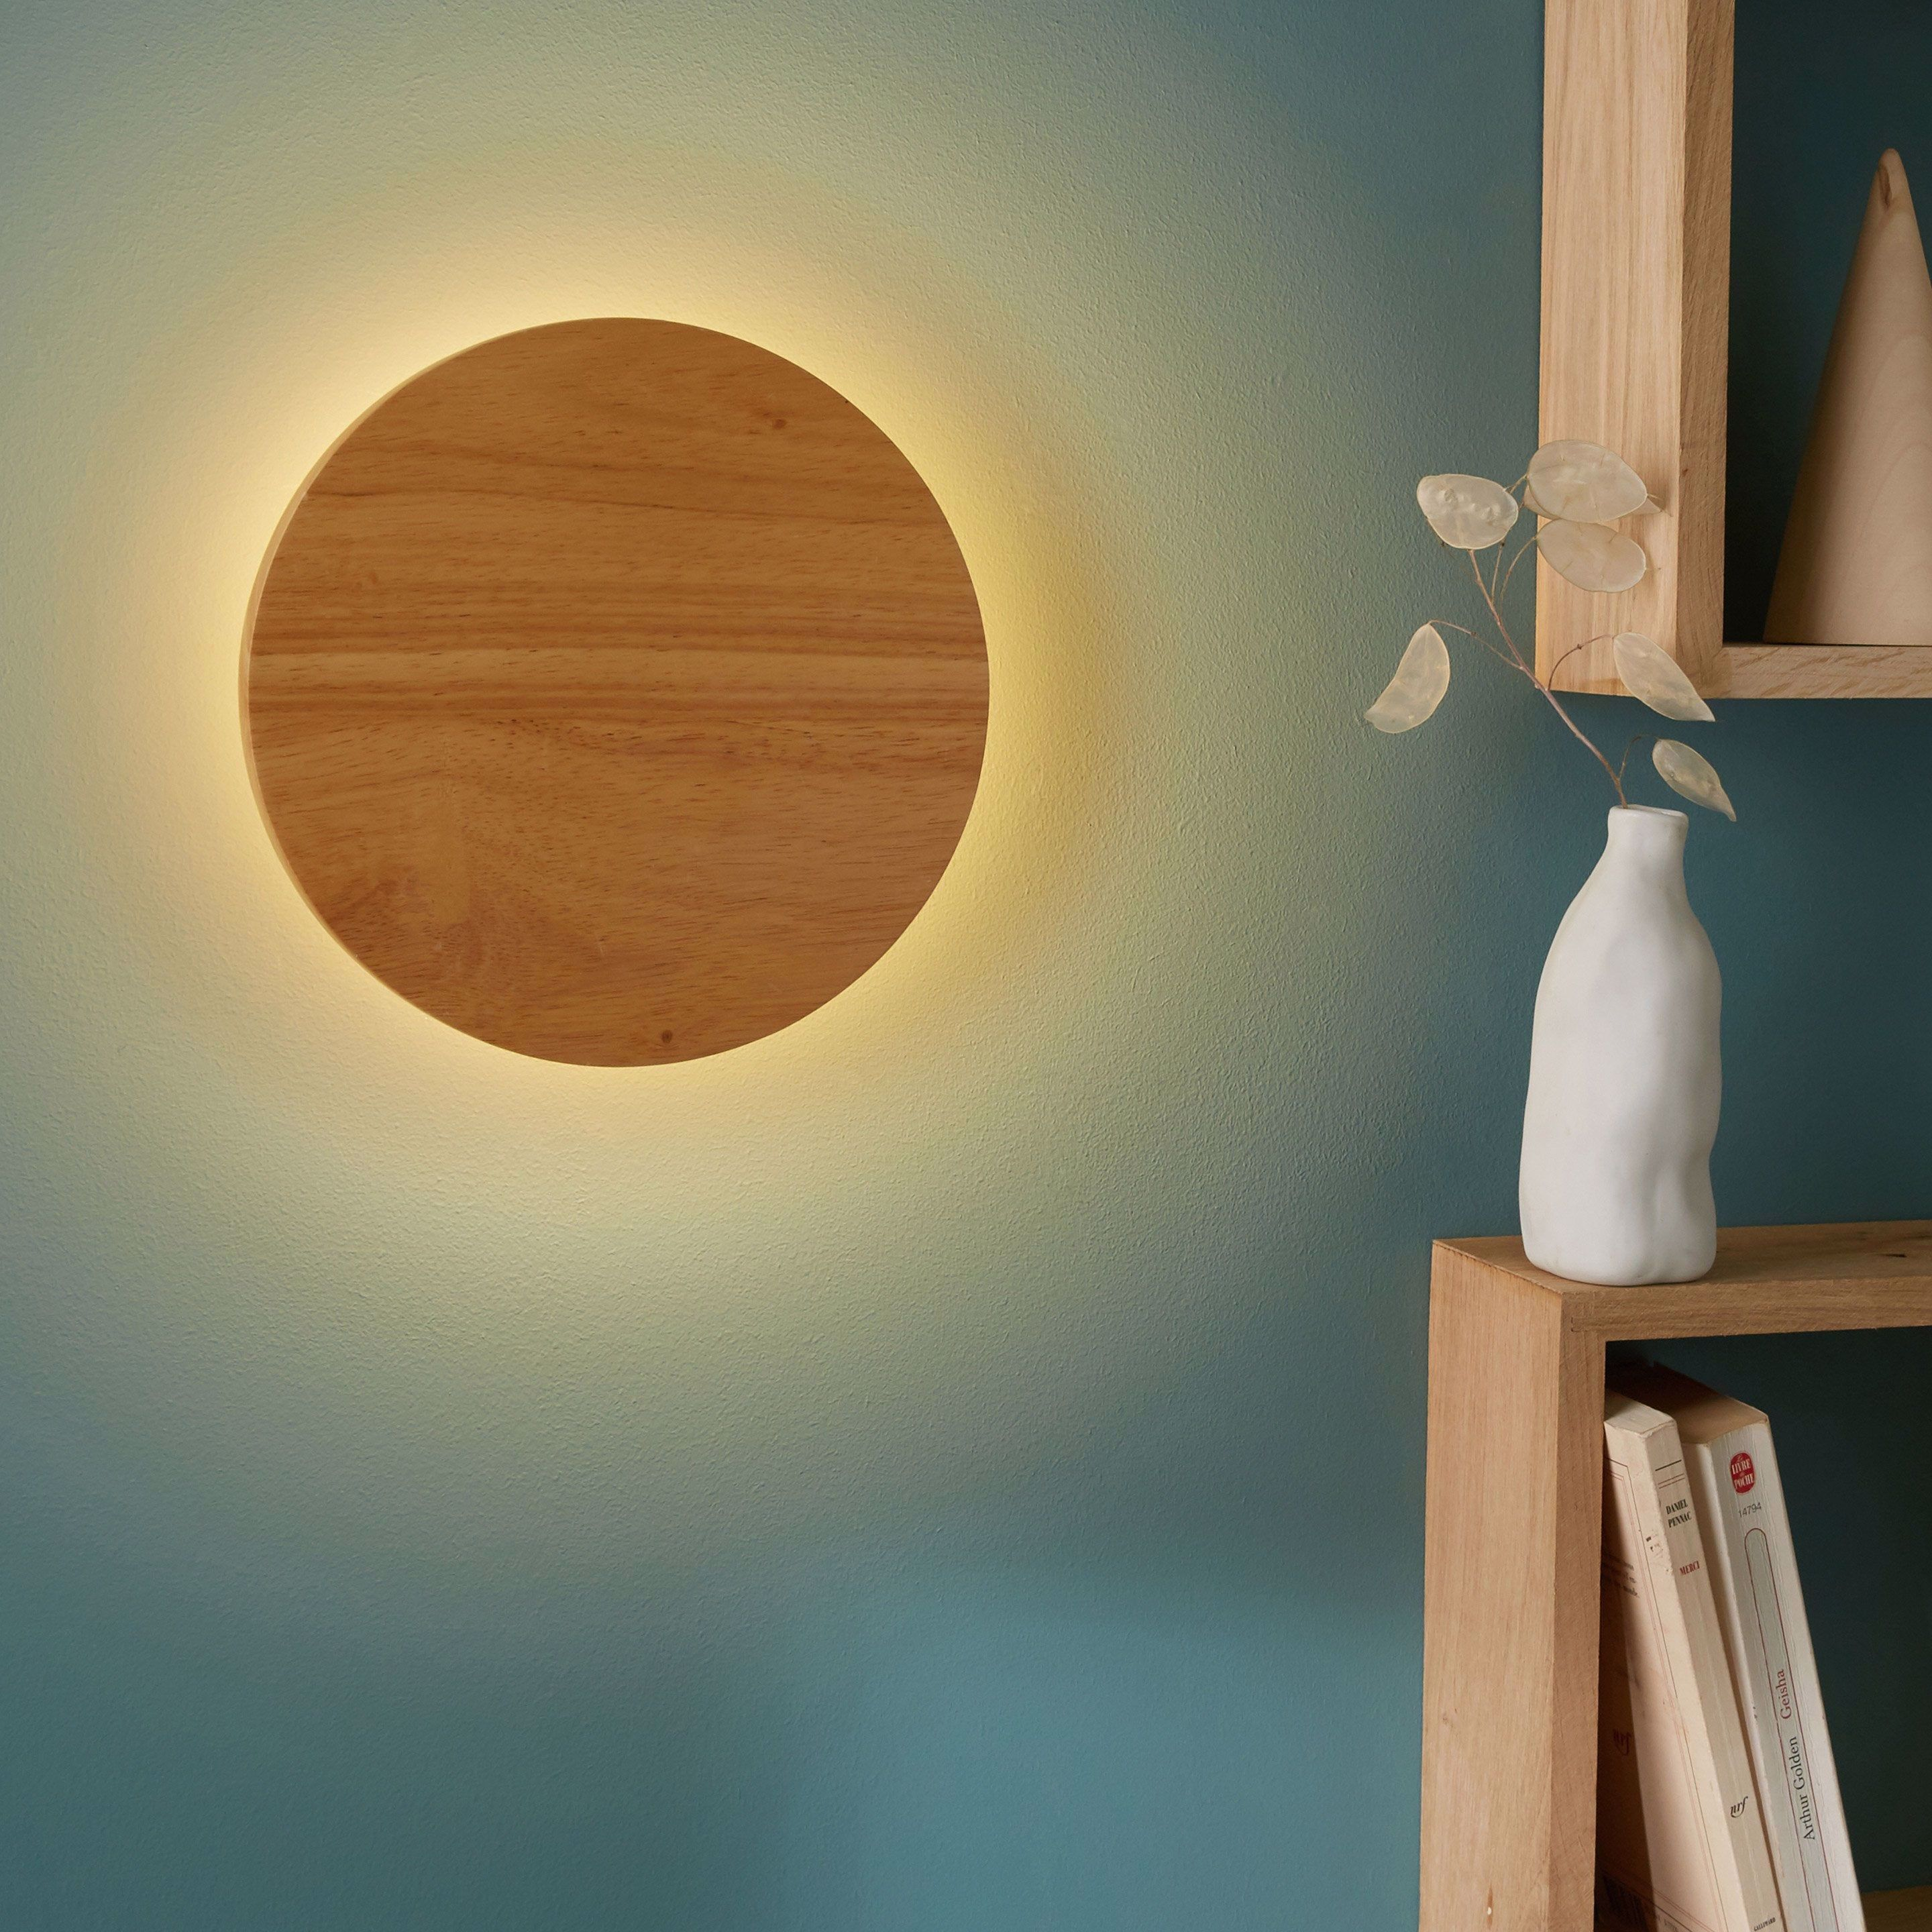 Applique Bois Bois Led Integree Inspire Flav In 2020 Wall Lamp Wall Lights Wall